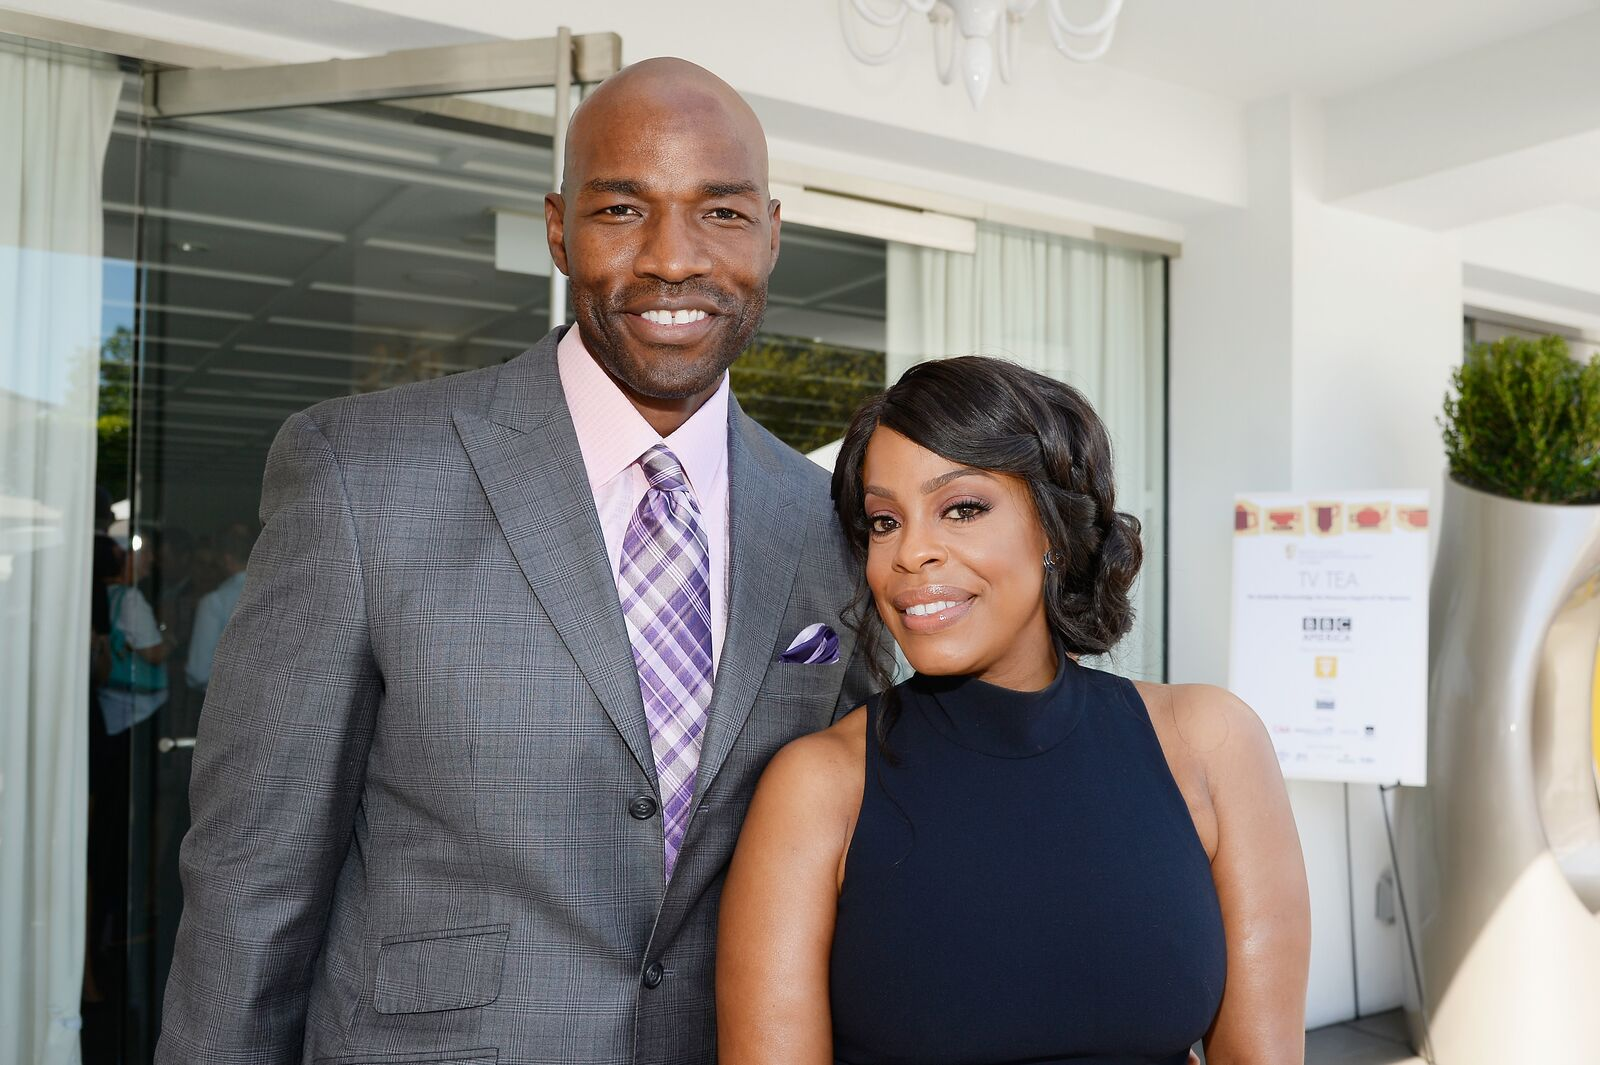 Jay Tucker (L) and actress Niecy Nash attend the 2015 BAFTA Los Angeles TV Tea at SLS Hotel on September 19, 2015 | Photo: Getty Images